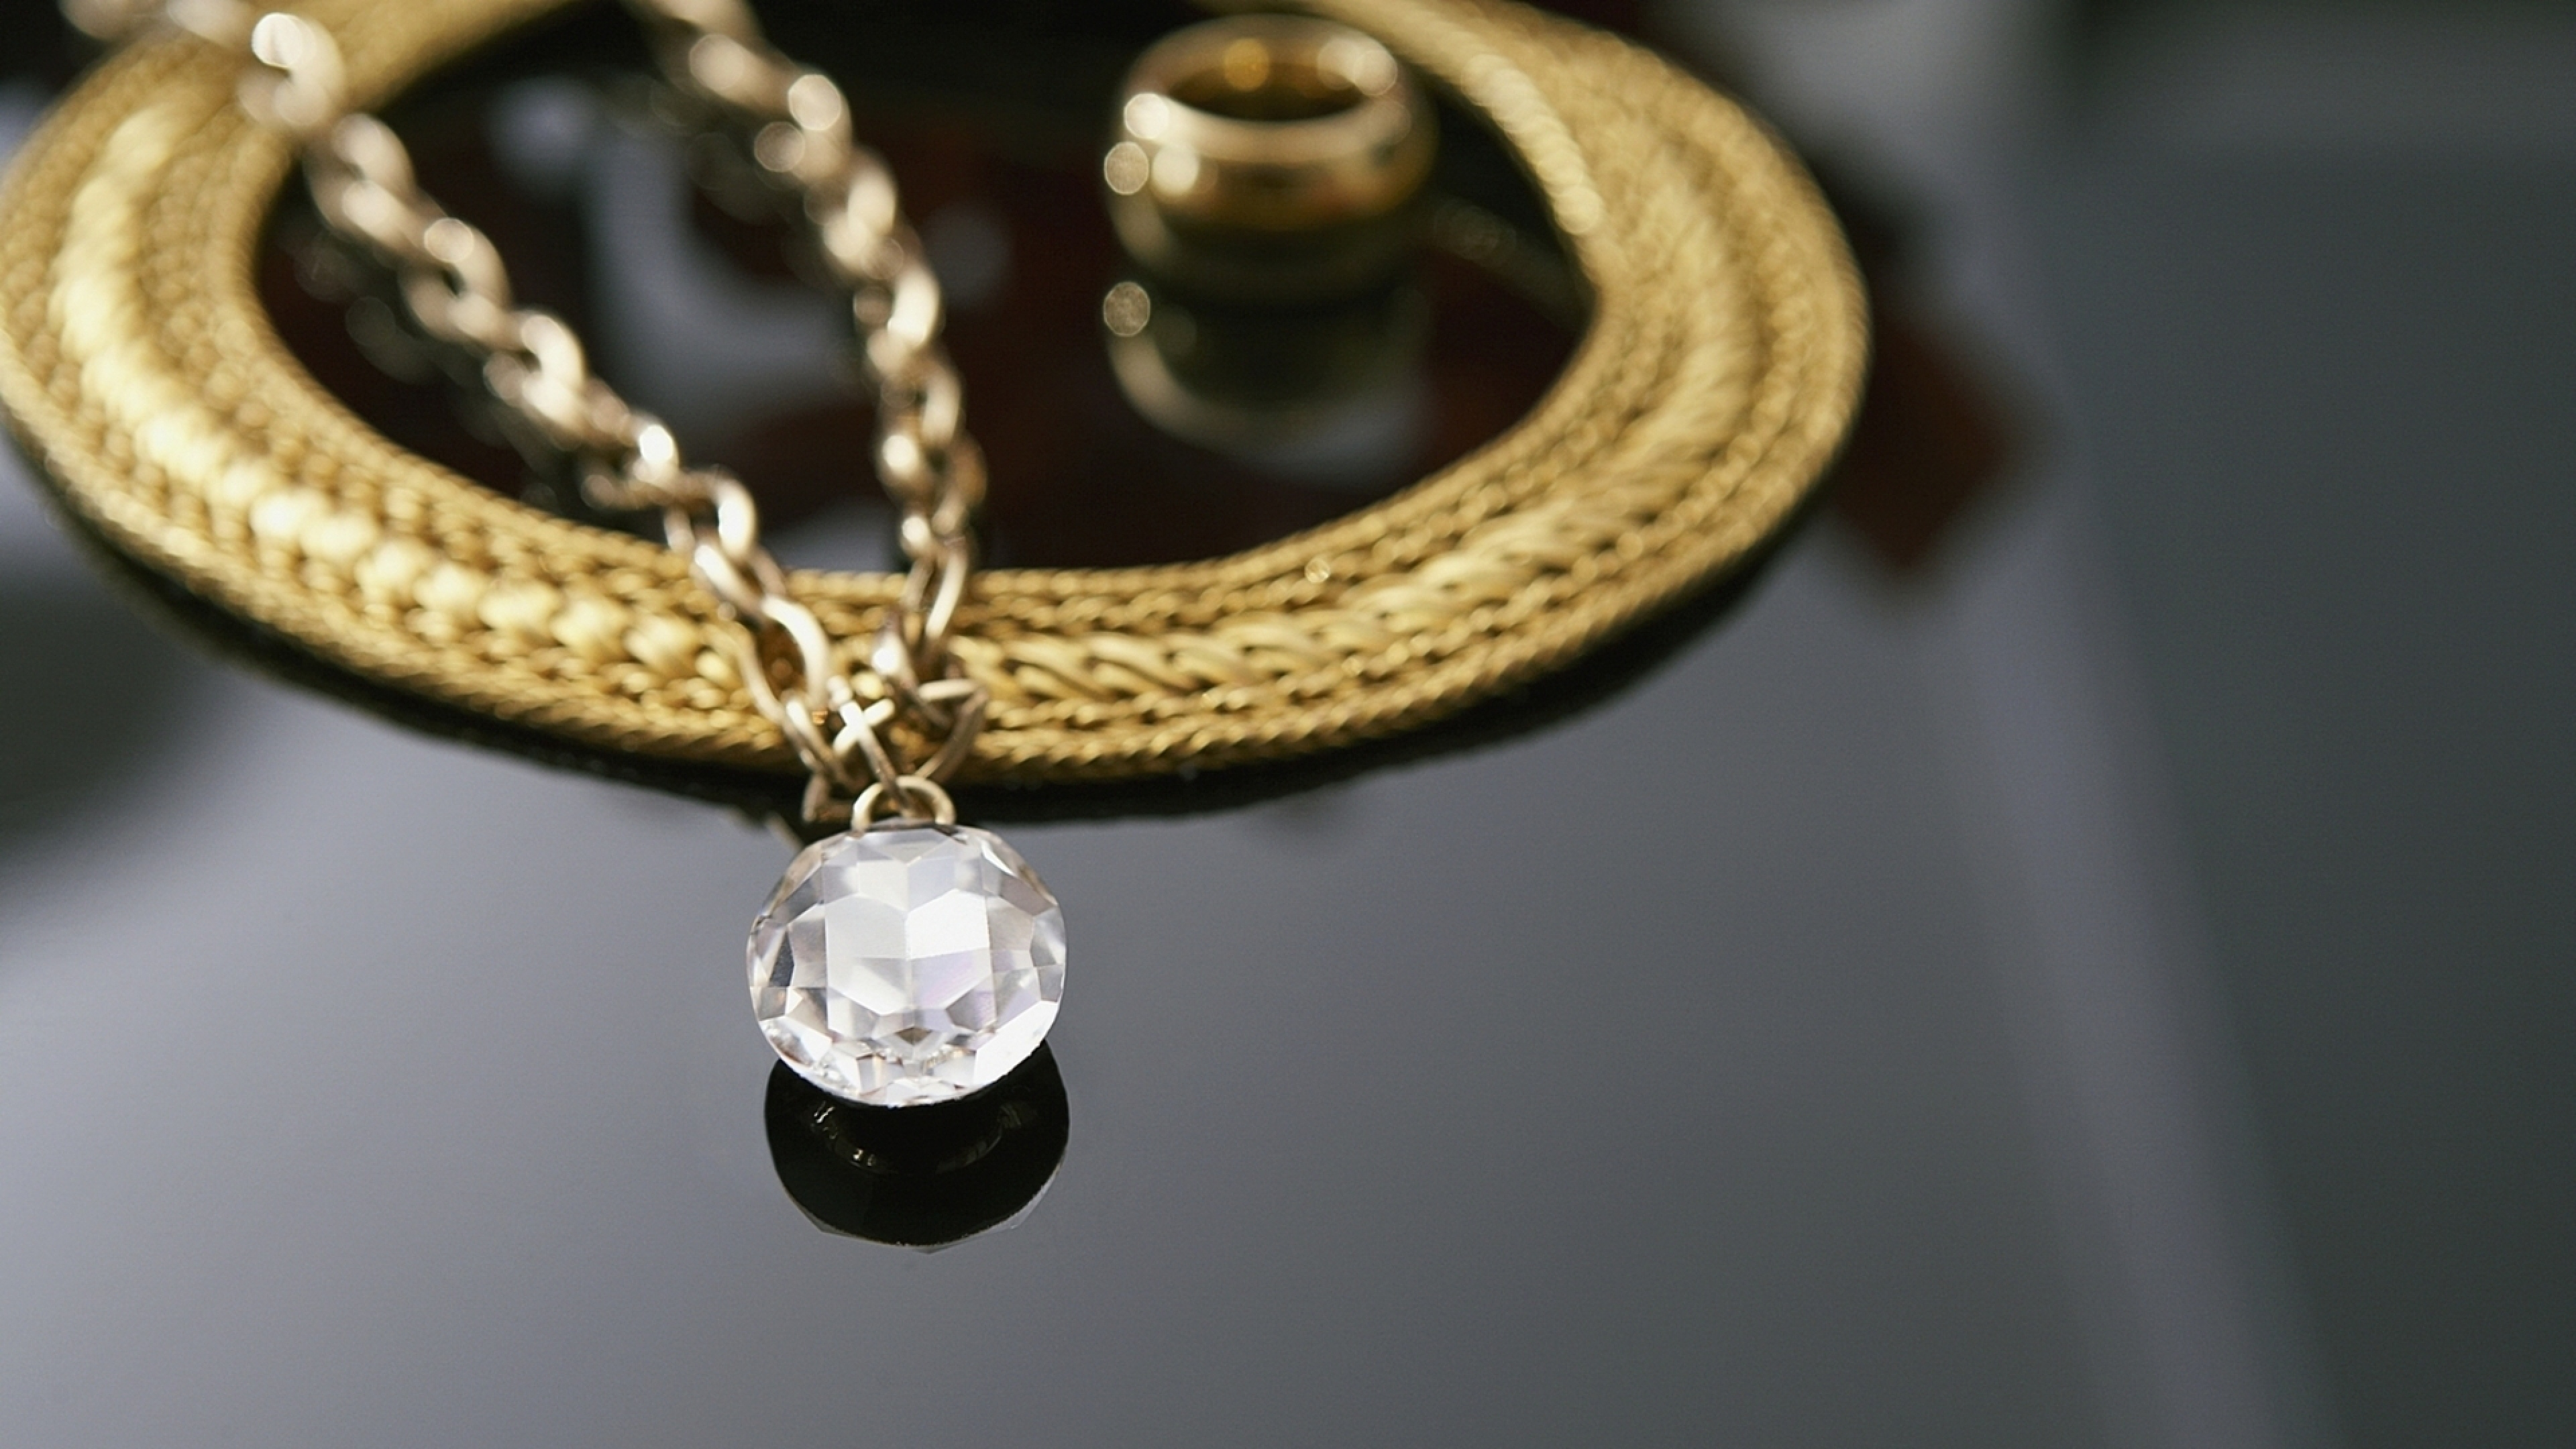 Gold Necklace Wallpaper